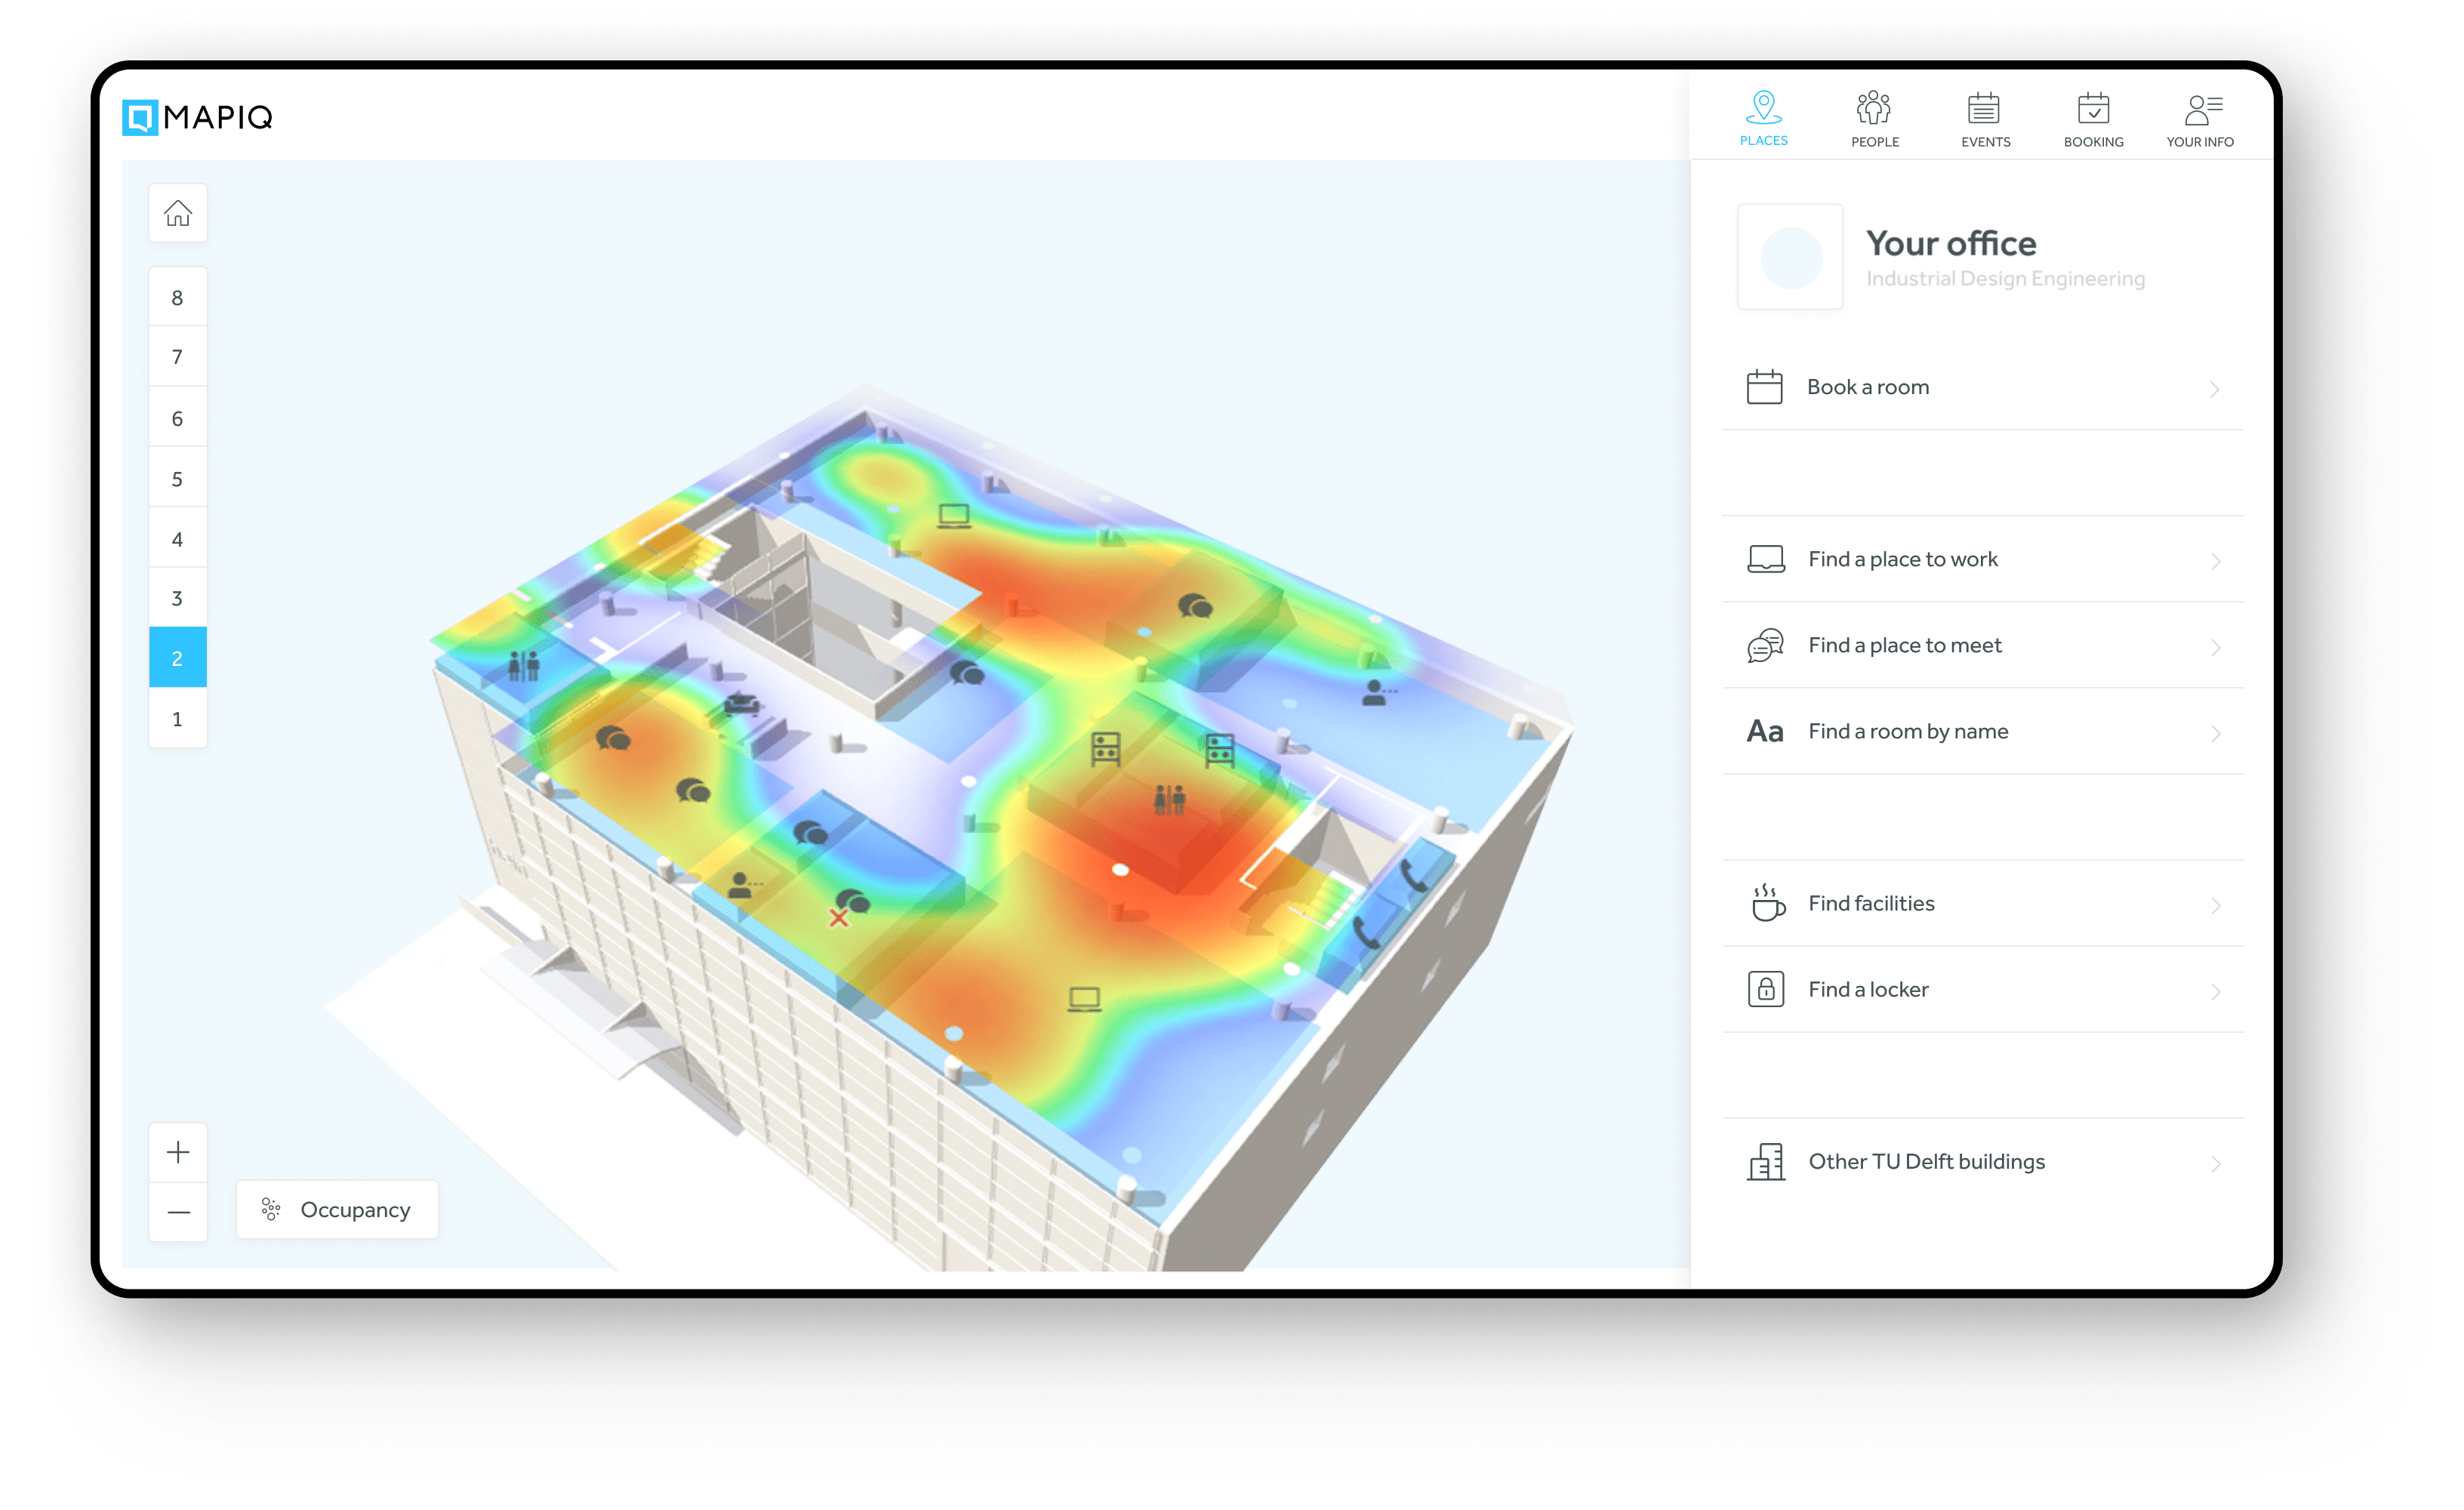 The occupancy heatmap visualizes all busy areas within the office space.